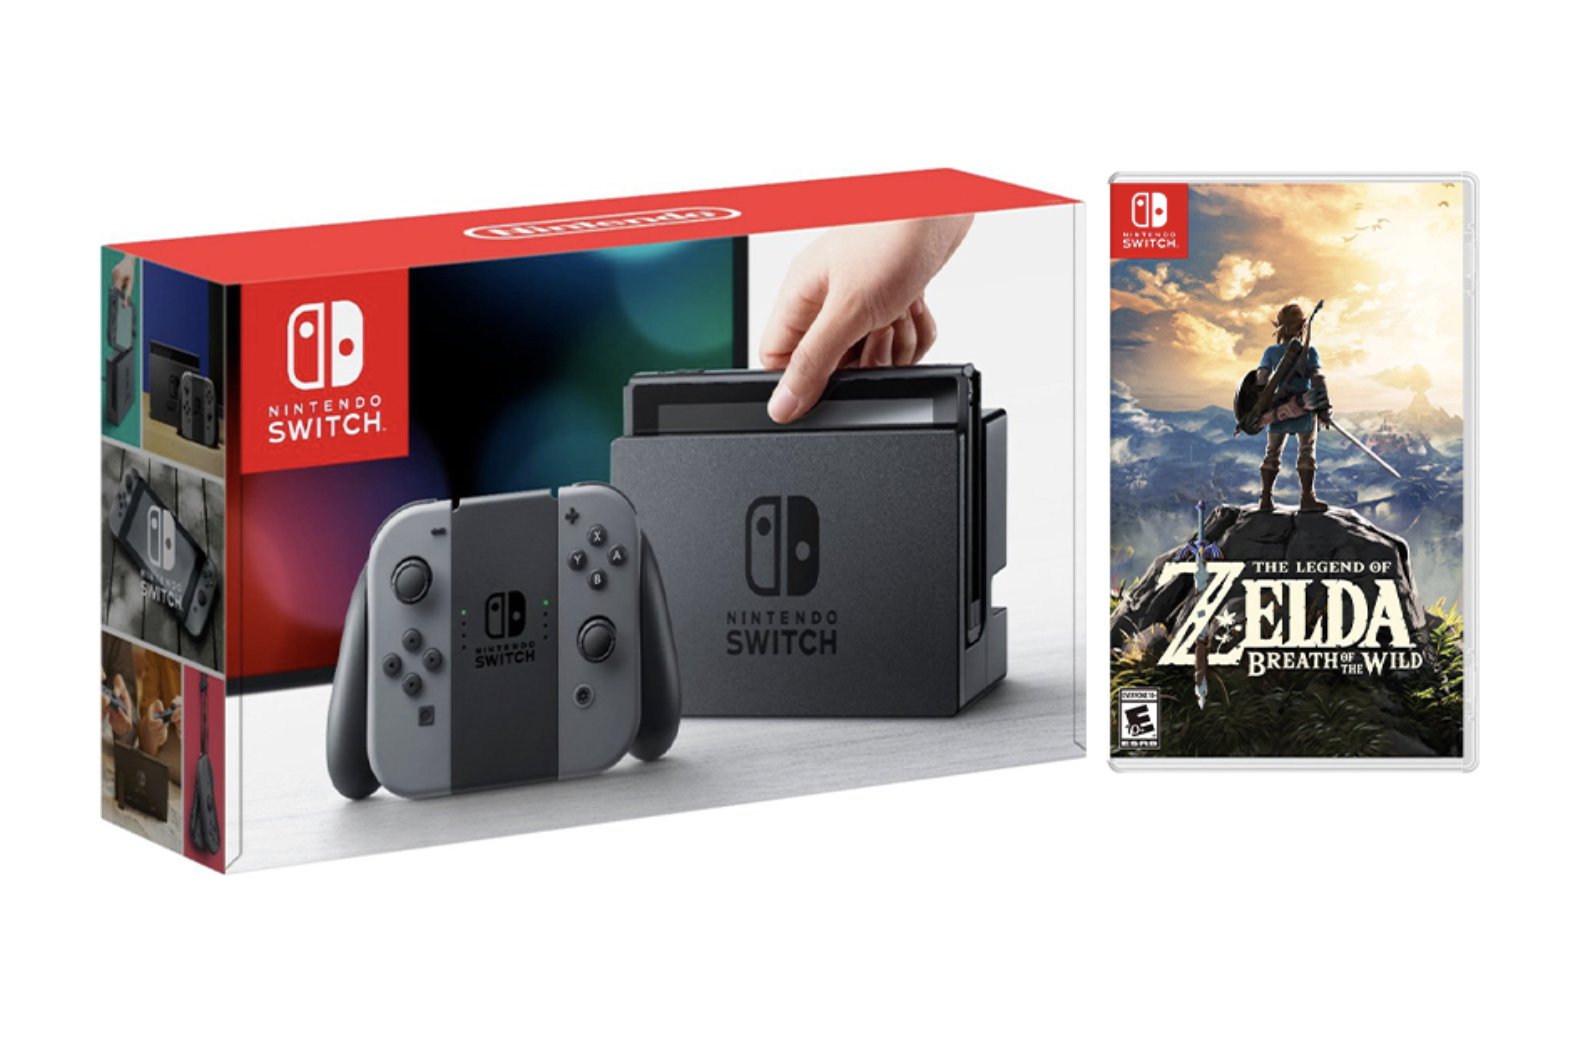 Nintendo Switch Gray Joy-Con Console Bundle with The Legend of Zelda: Breath of the Wild